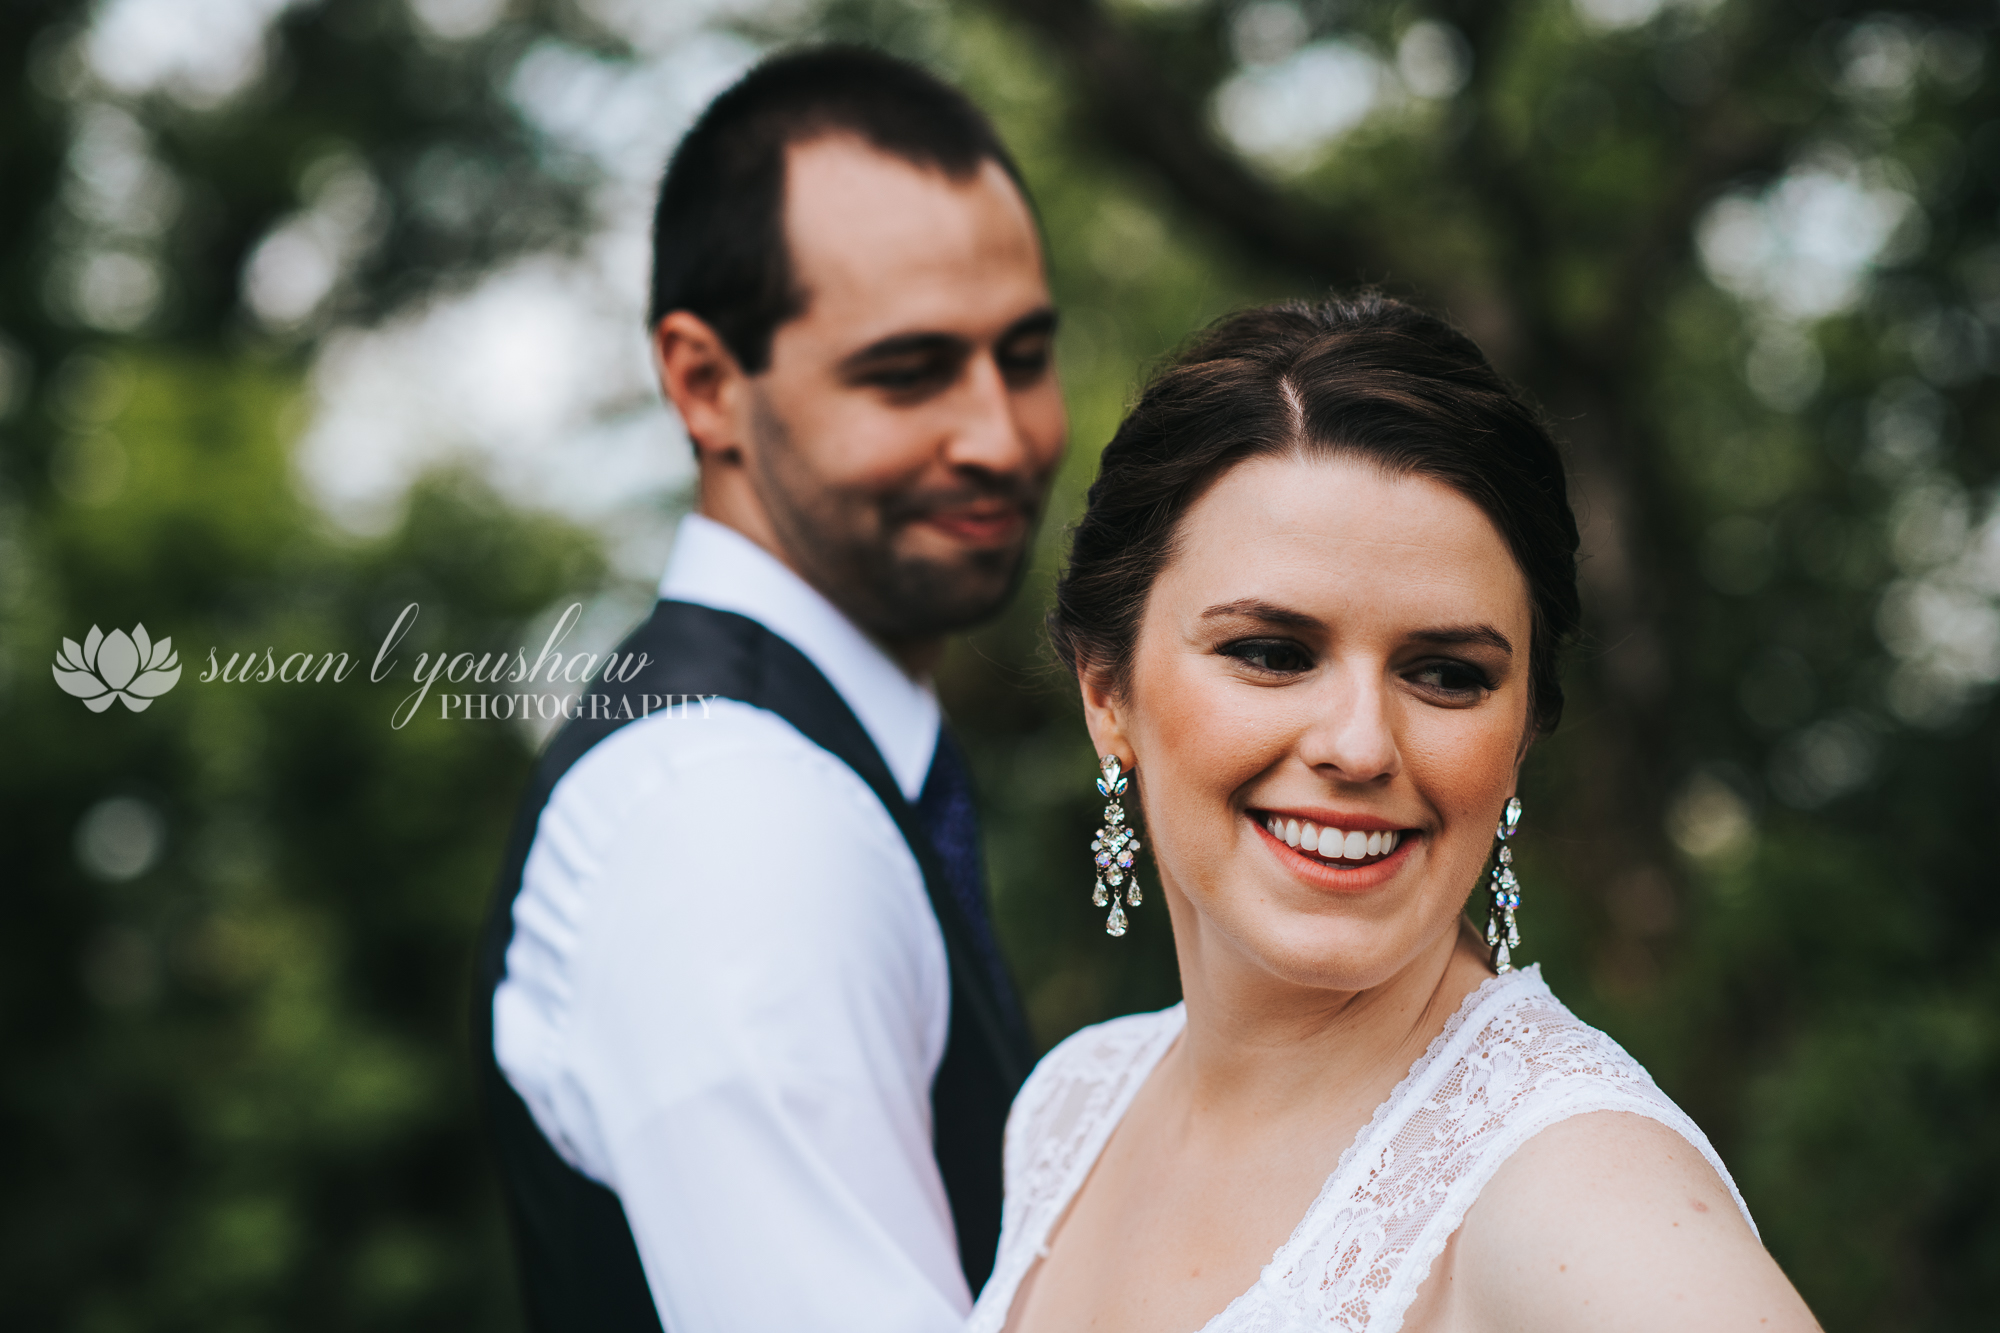 Adena and  Erik Wedding 05-17-2019 SLY Photography-43.jpg